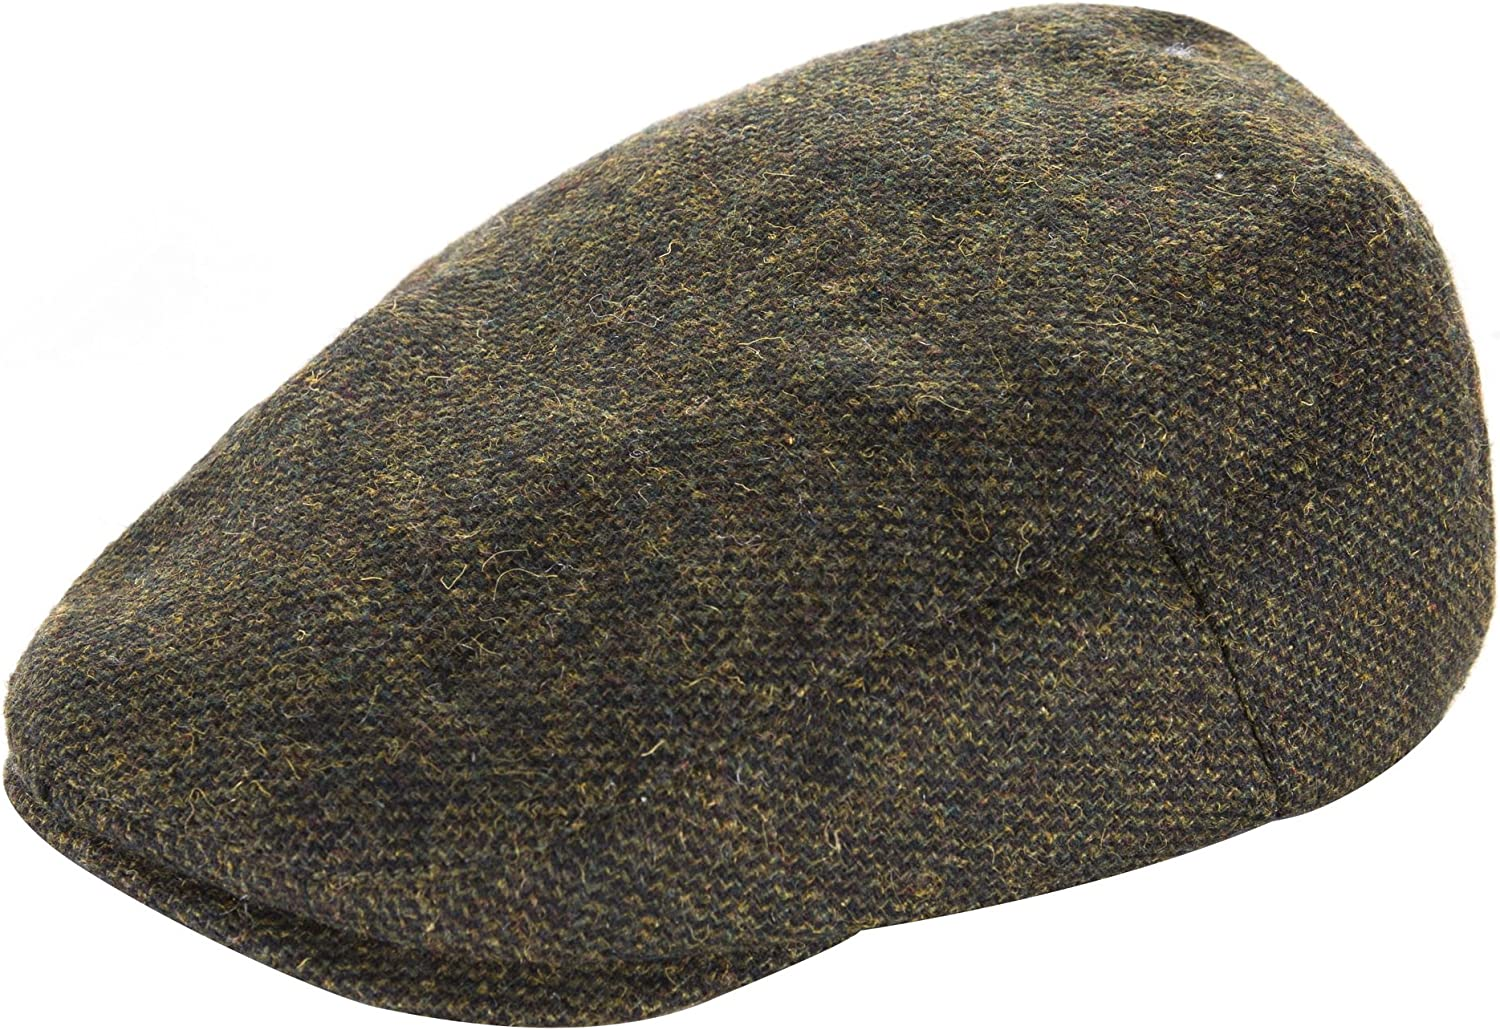 Heritage Traditions Kids Boys Classic Tweed Flat Cap Hat